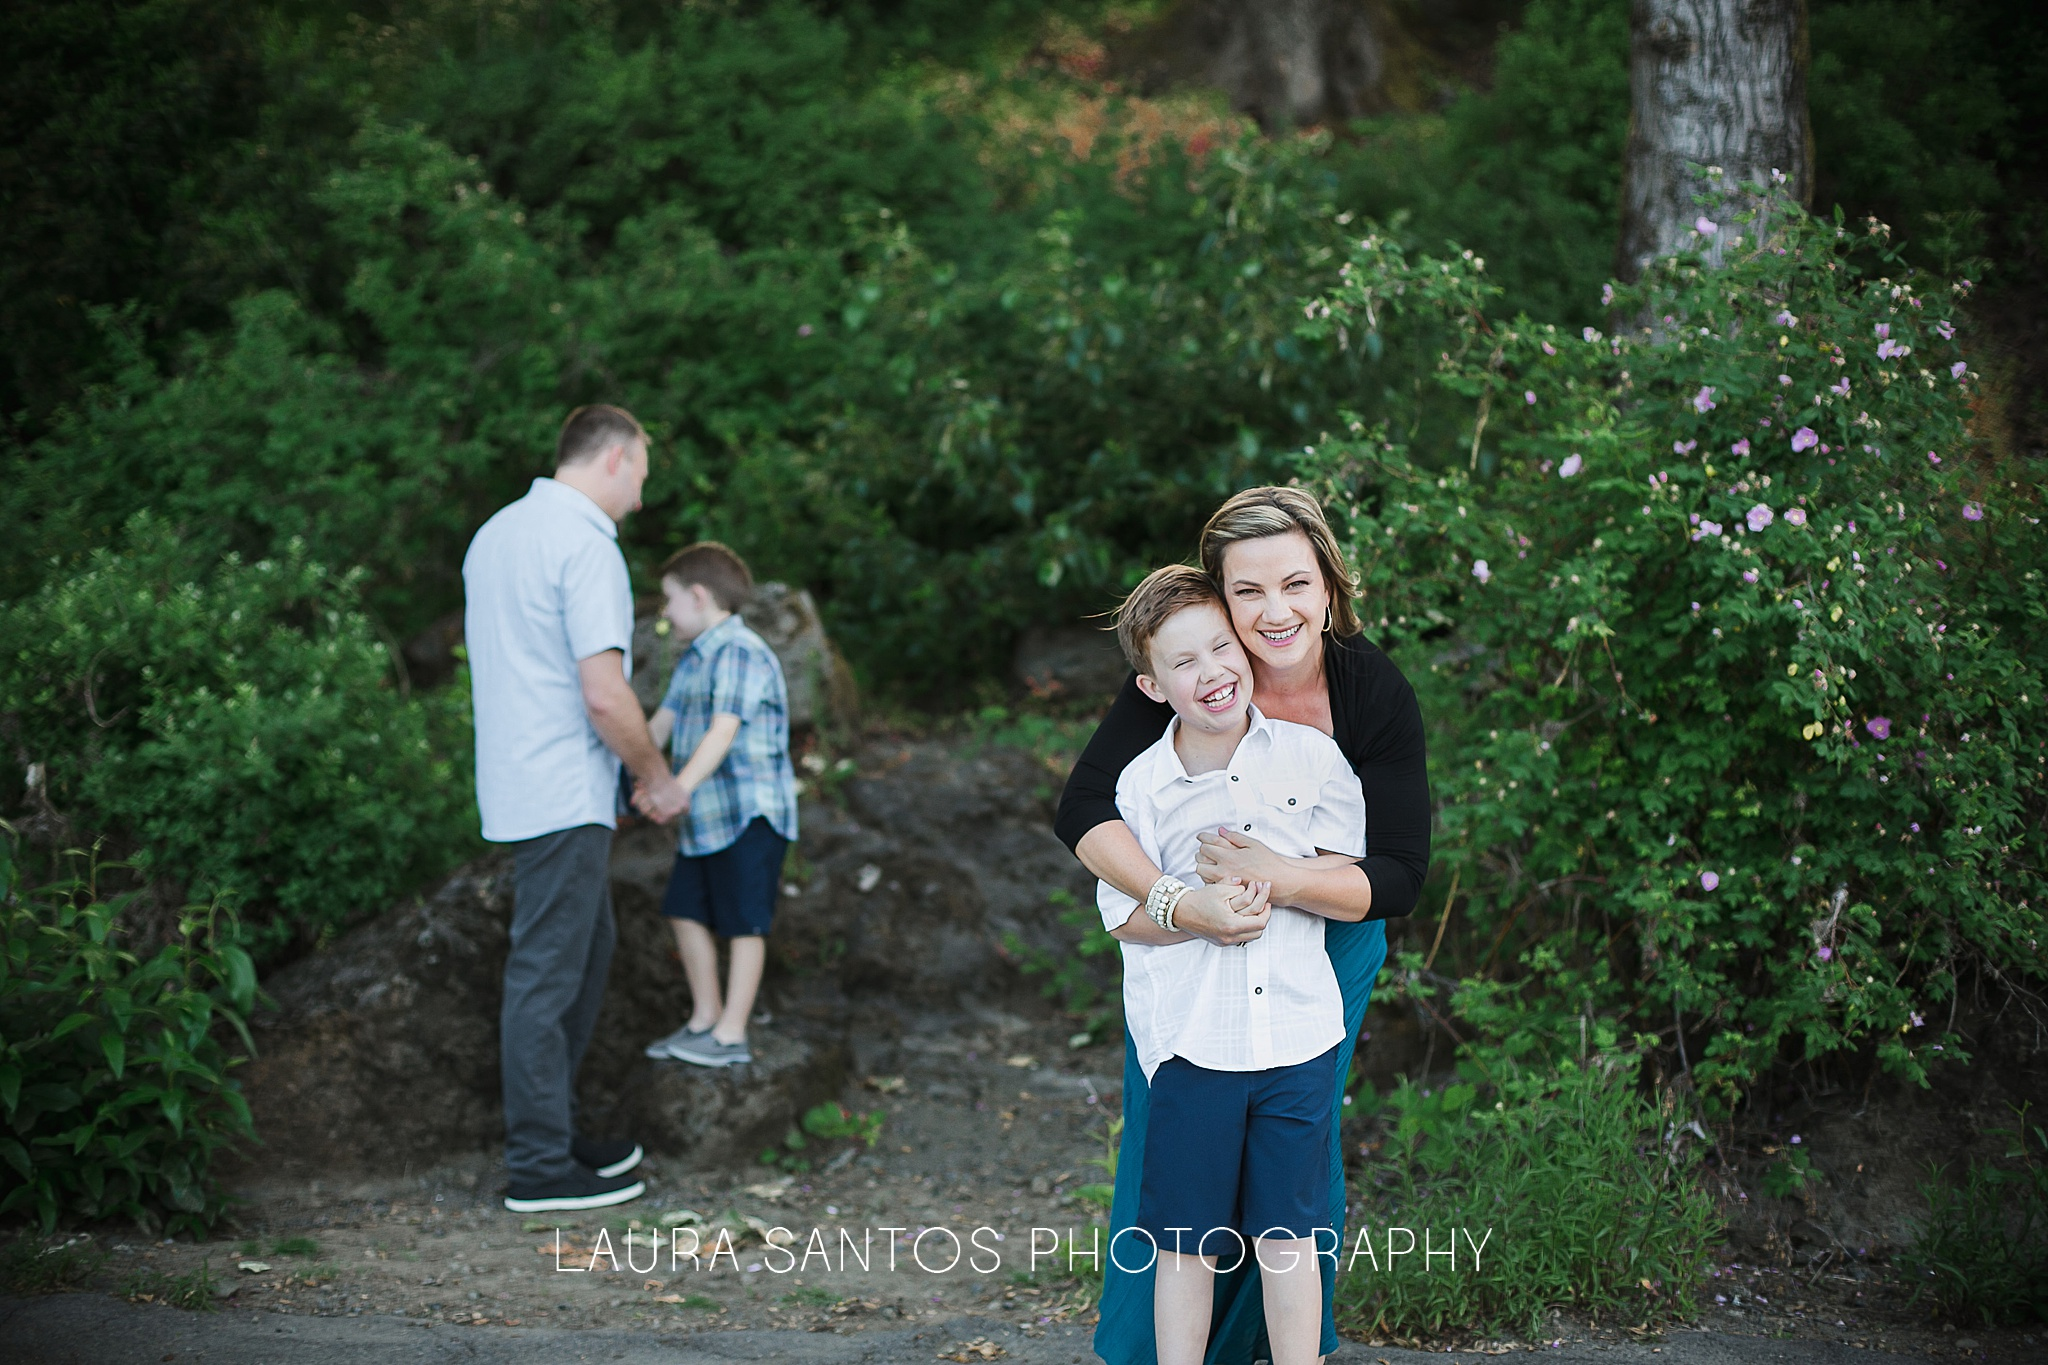 Laura Santos Photography Portland Oregon Family Photographer_1020.jpg